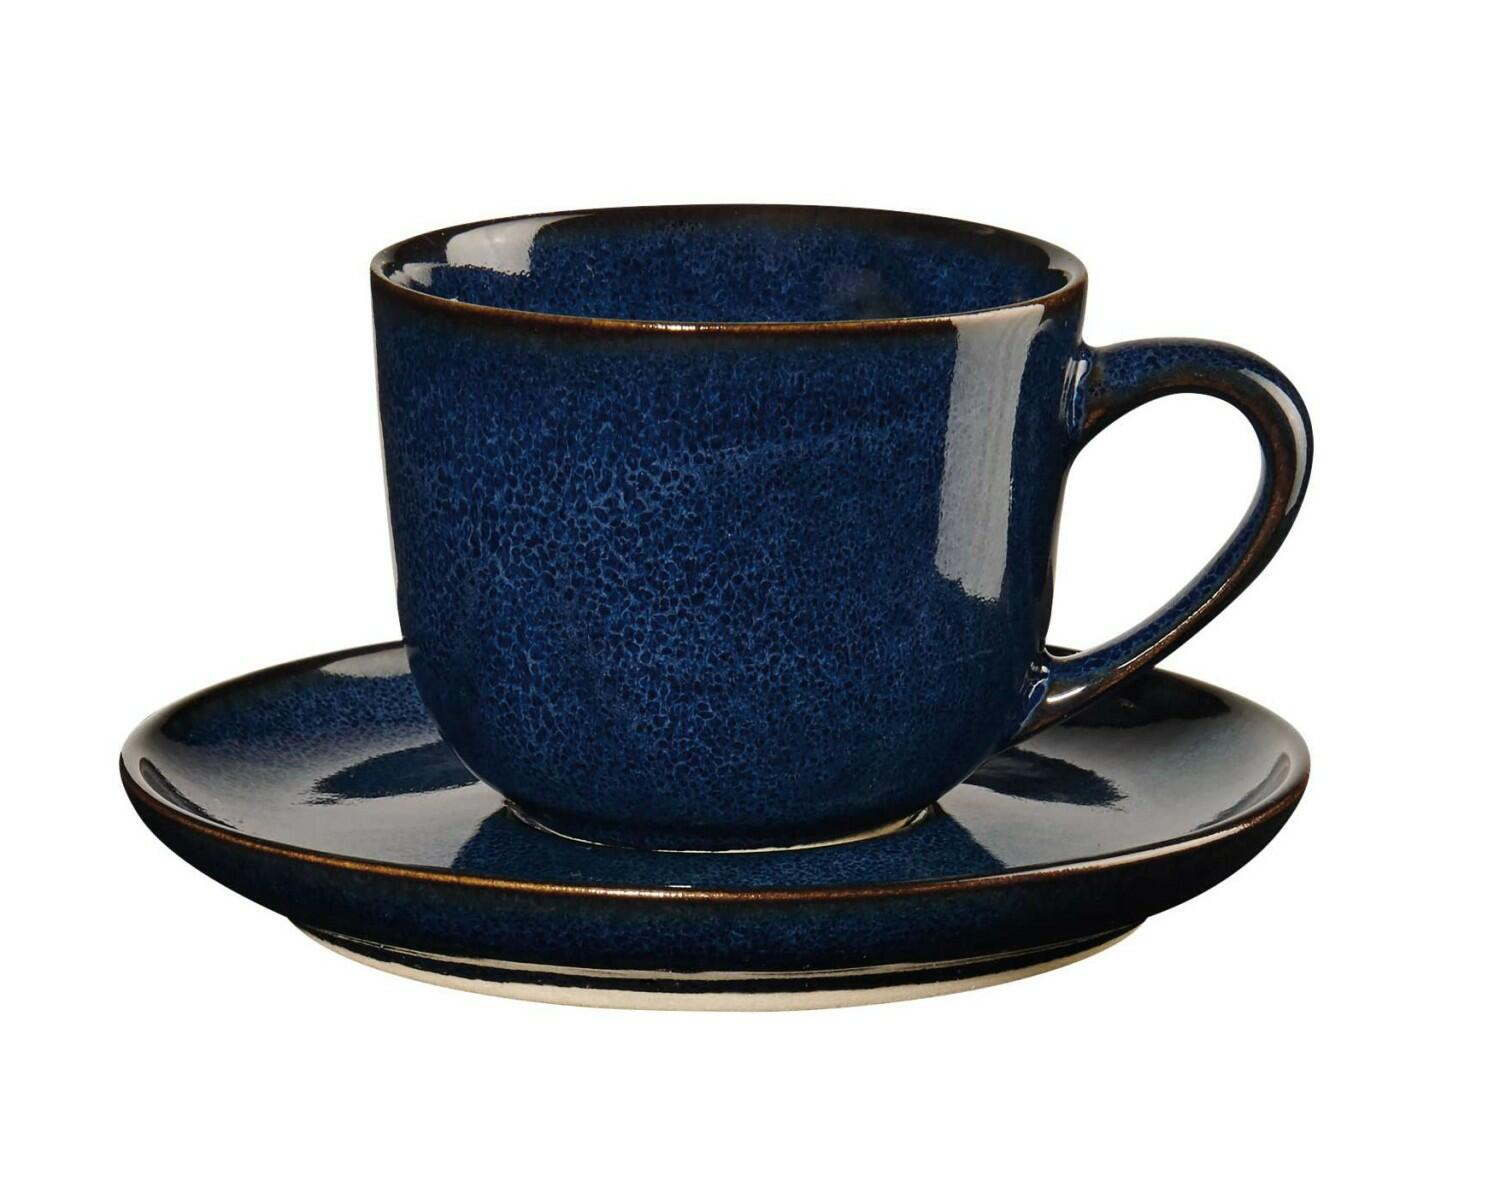 ASA Espressotasse mit Untertasse Saisons midnight blue